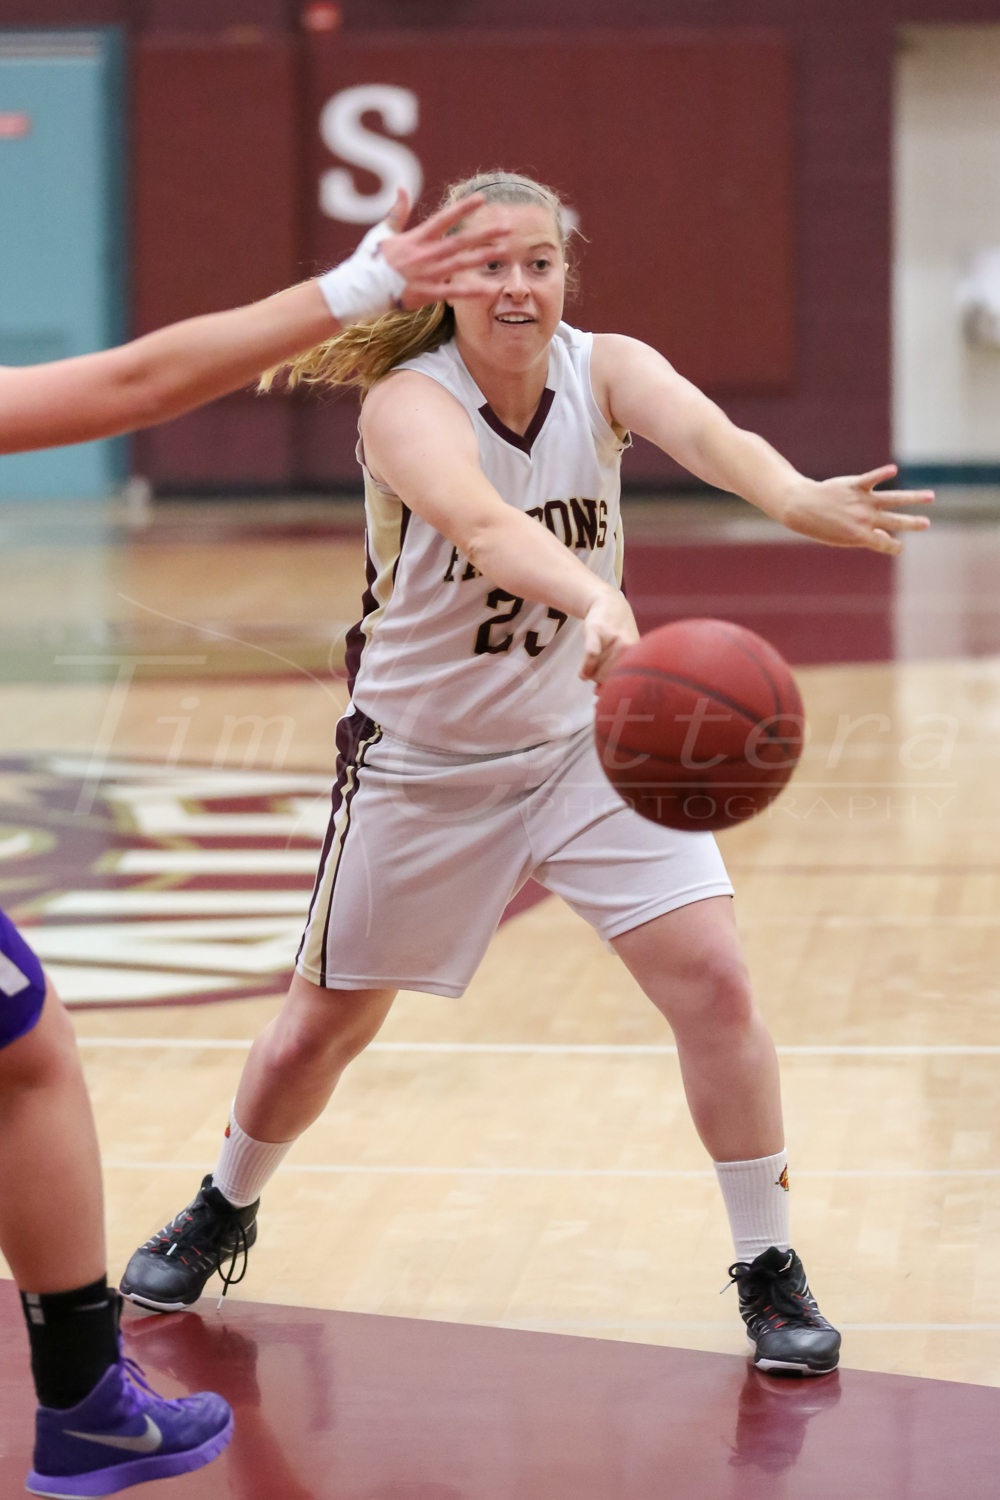 SCOTTS VALLEY, CA - MARCH 17: Scotts Valley High vs Piedmont High Girls Basketball on March 17, 2015 Scotts Valley, California. (Photo by ©Tim Cattera Photography/Local Sport Moments)